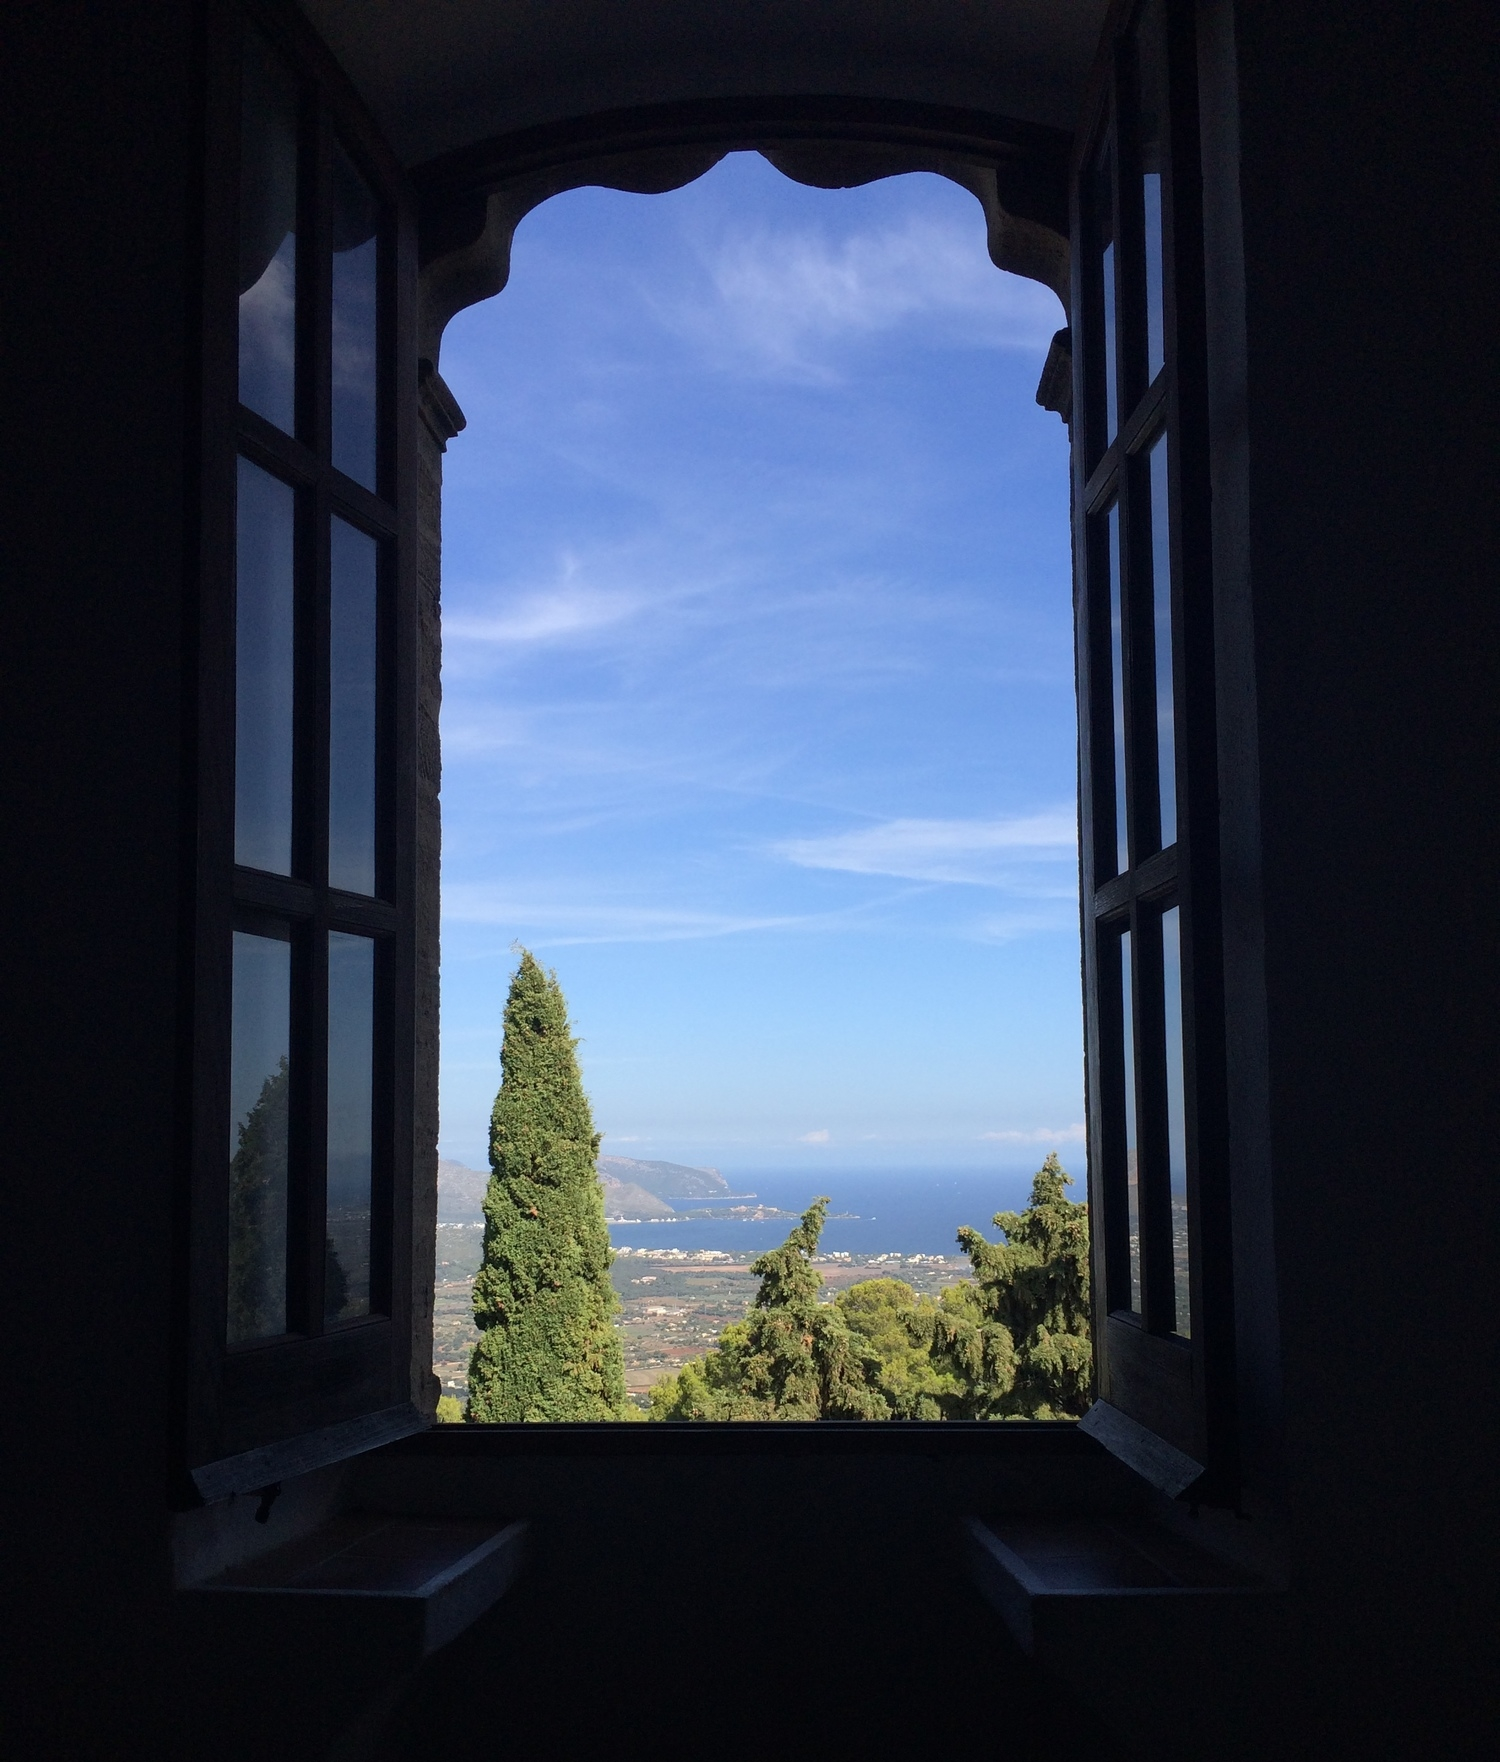 View from the dining hall windows.